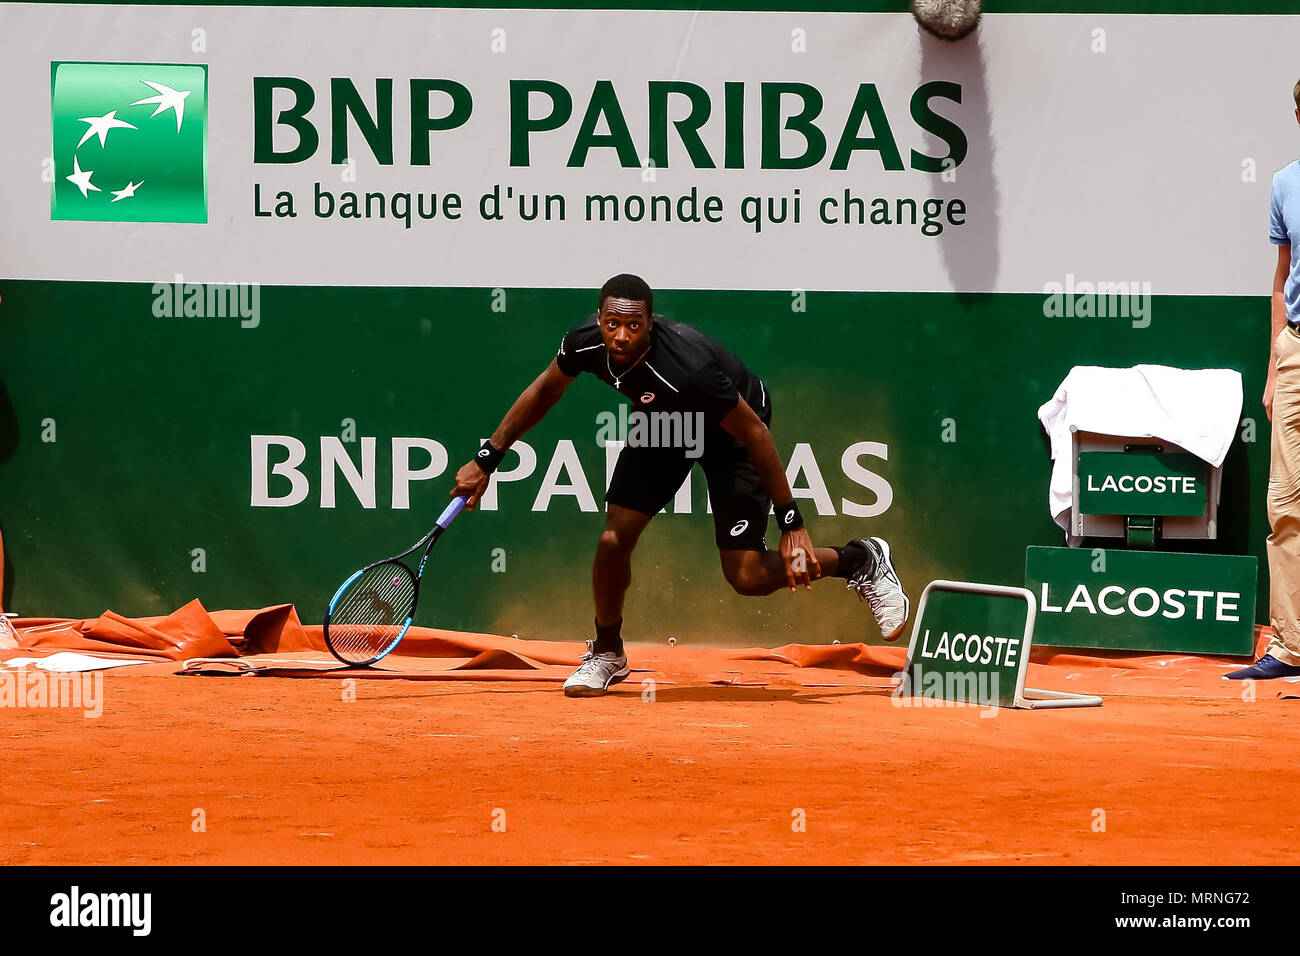 Paris, France. 27th May, 2018. Gael Monfils of France during his 1st round match at Day 1 at the 2018 French Open at Roland Garros. Credit: Frank Molter/Alamy Live News Stock Photo